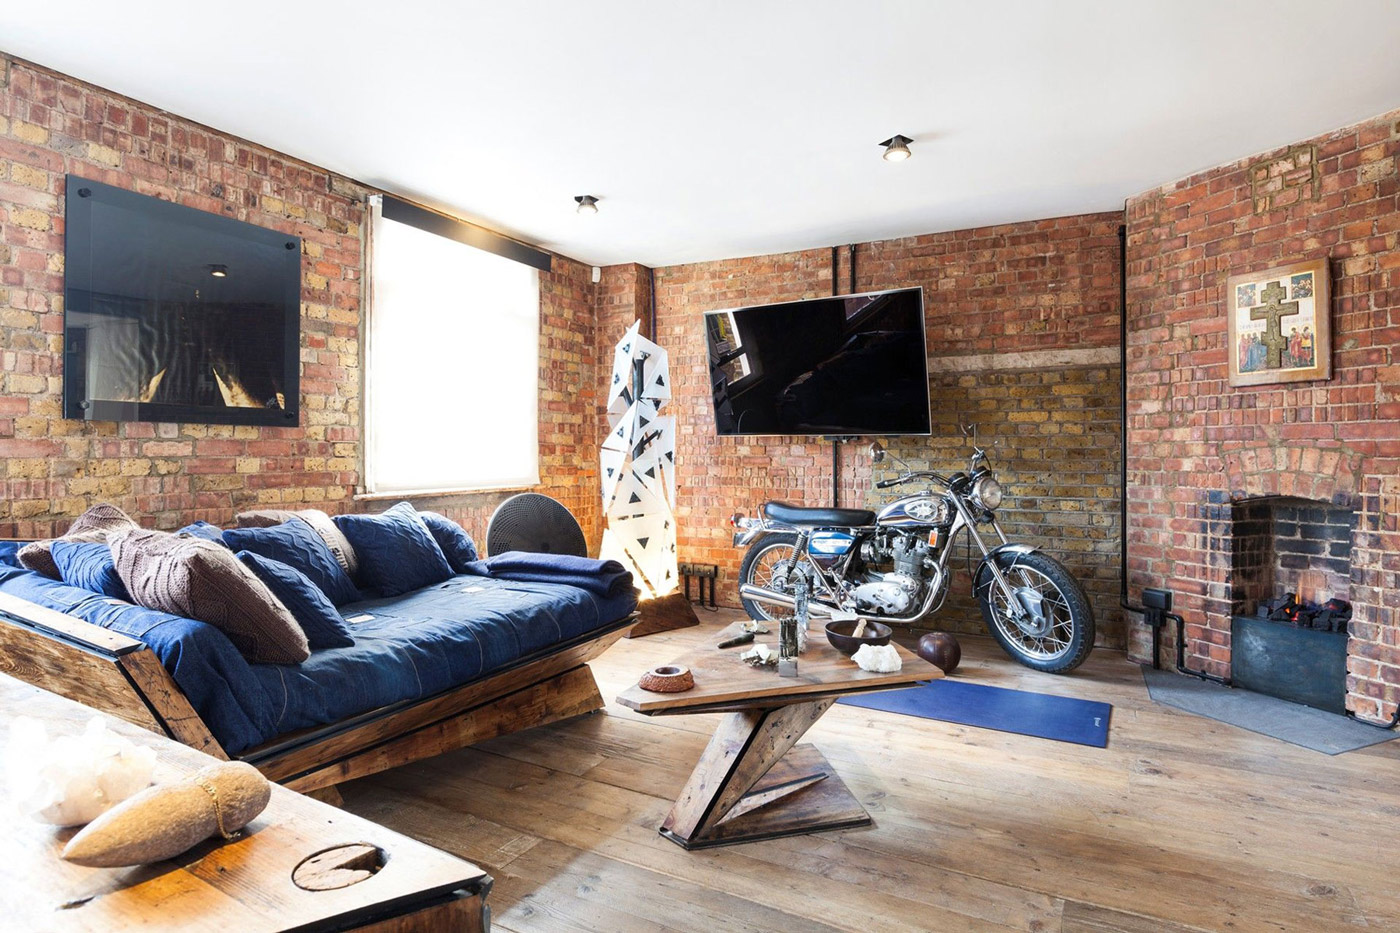 Brick Walls, Living Room, Wooden Sofa, Coffee Table, Fireplace, Archer Street Apartment in London, England